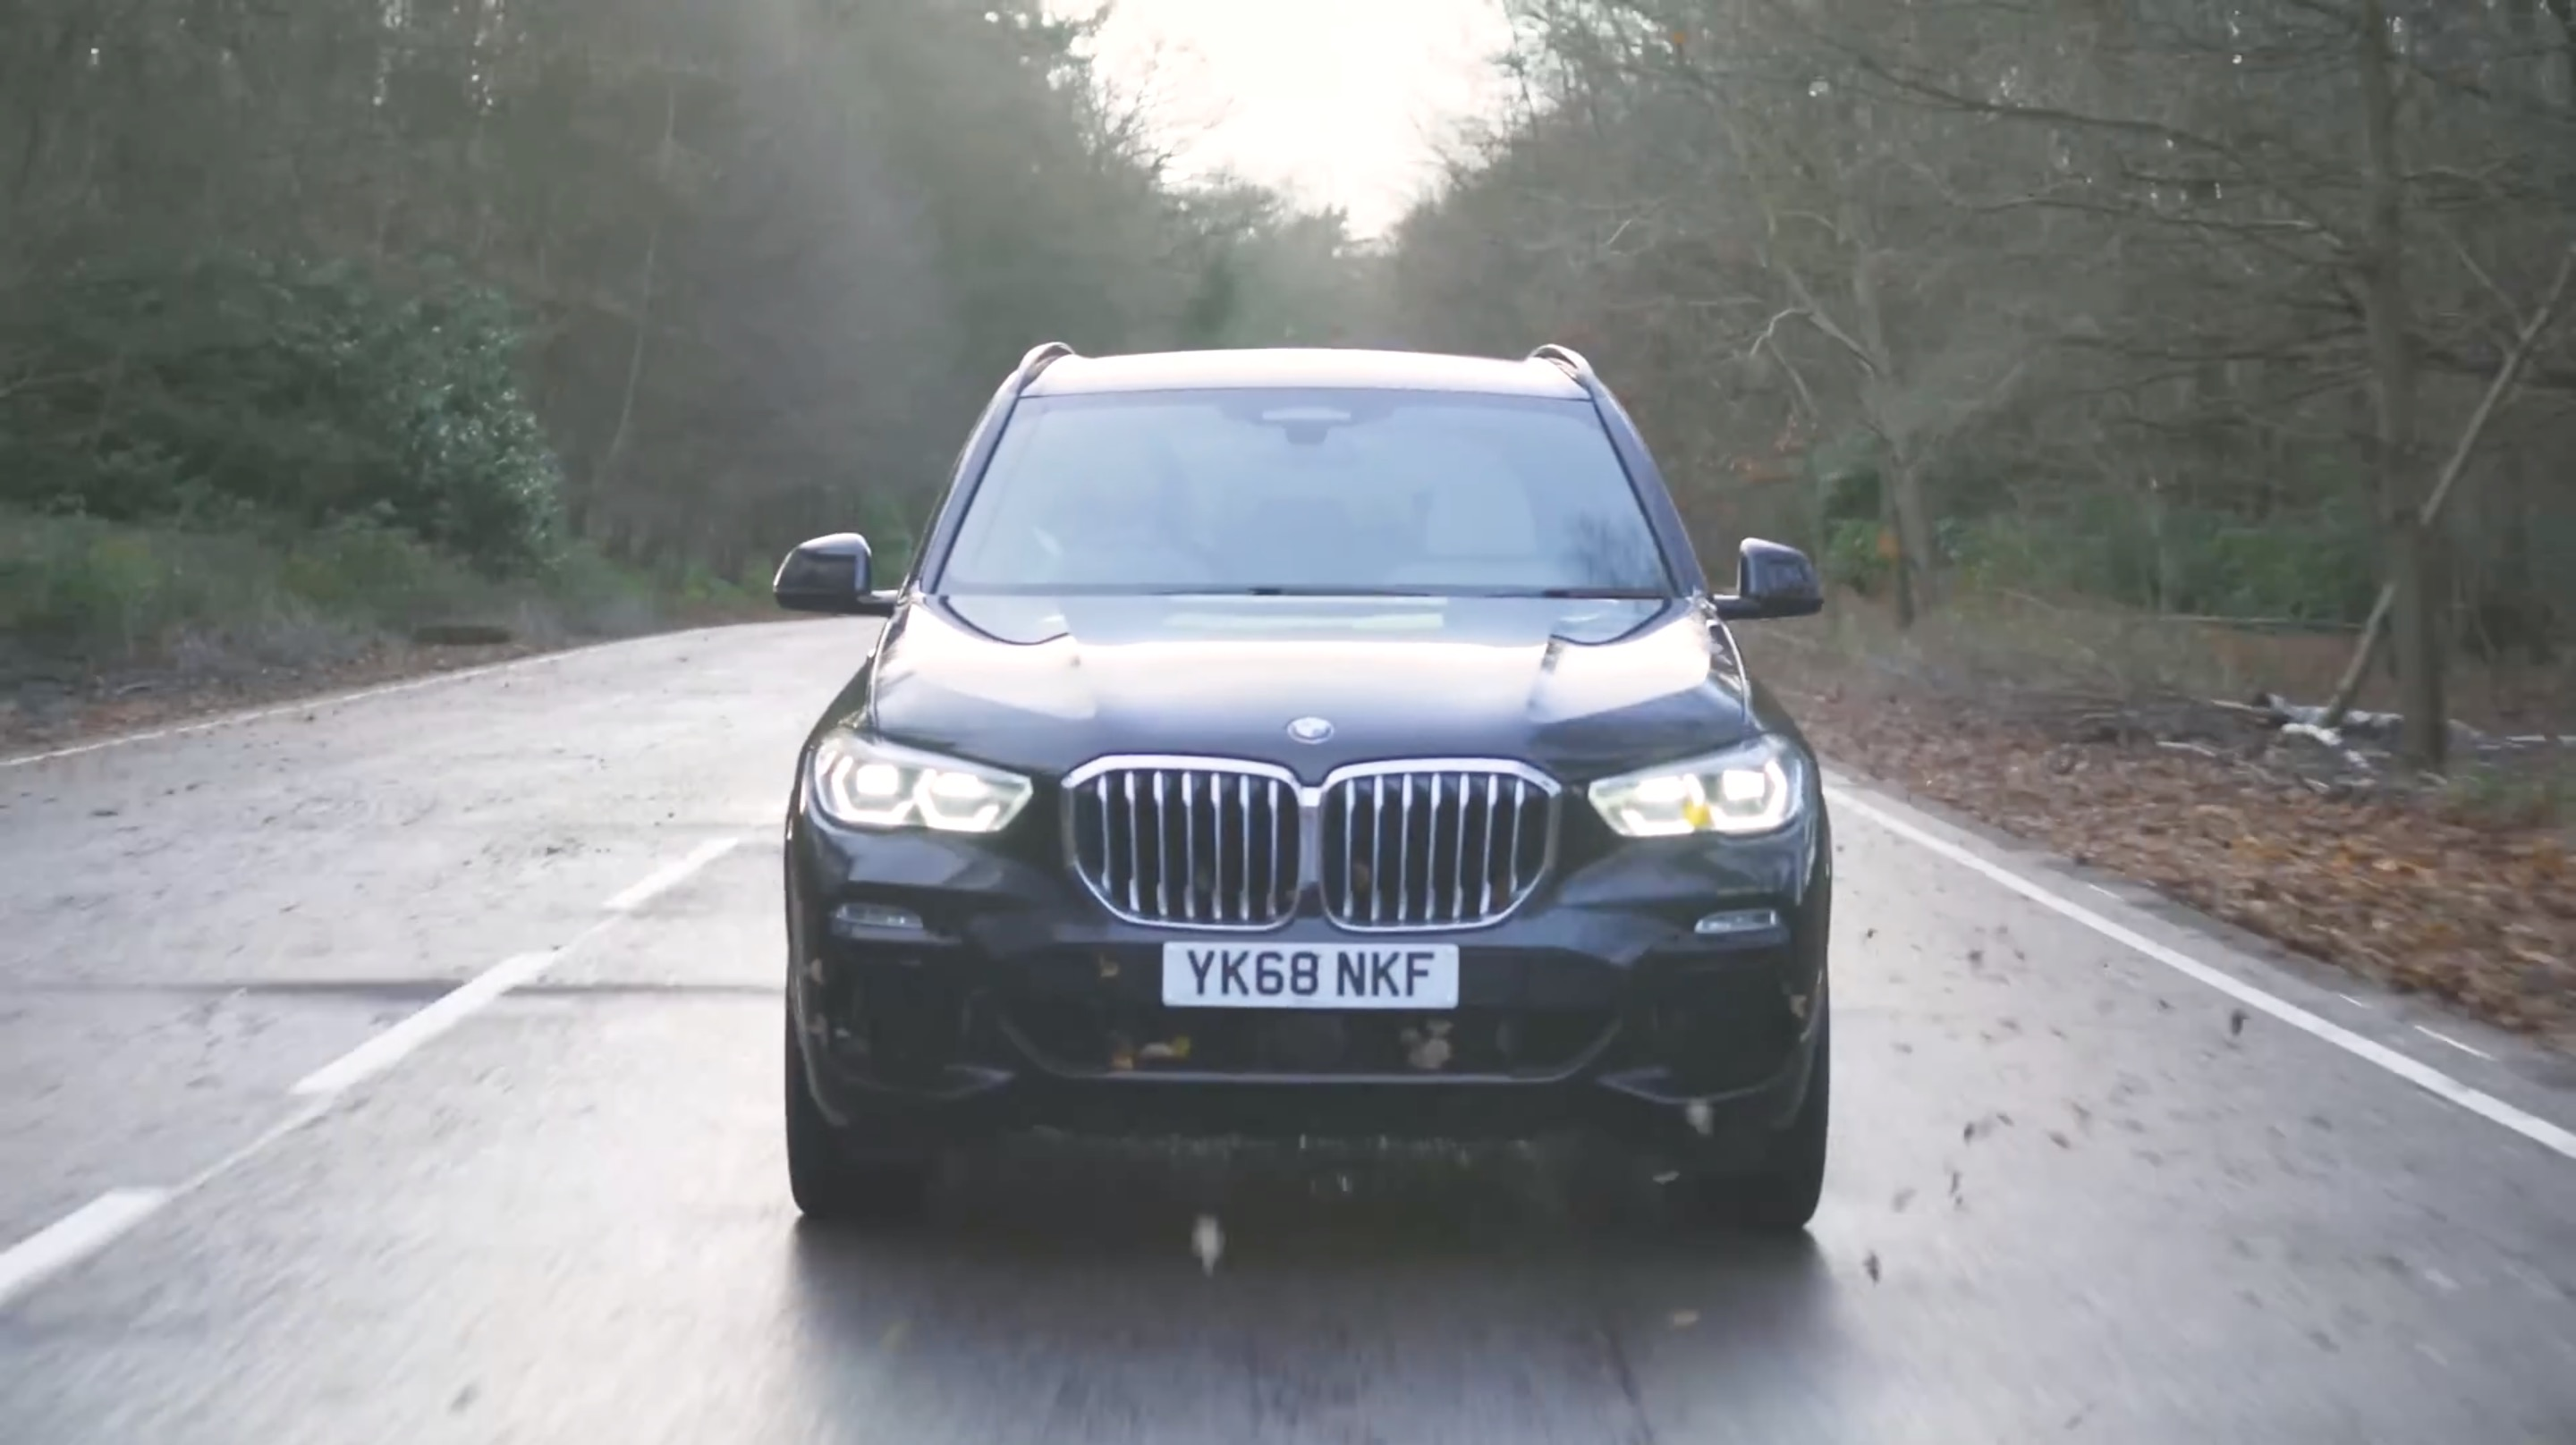 X5 Tops 10 Best Luxury SUVs of 2019 List by Carwow